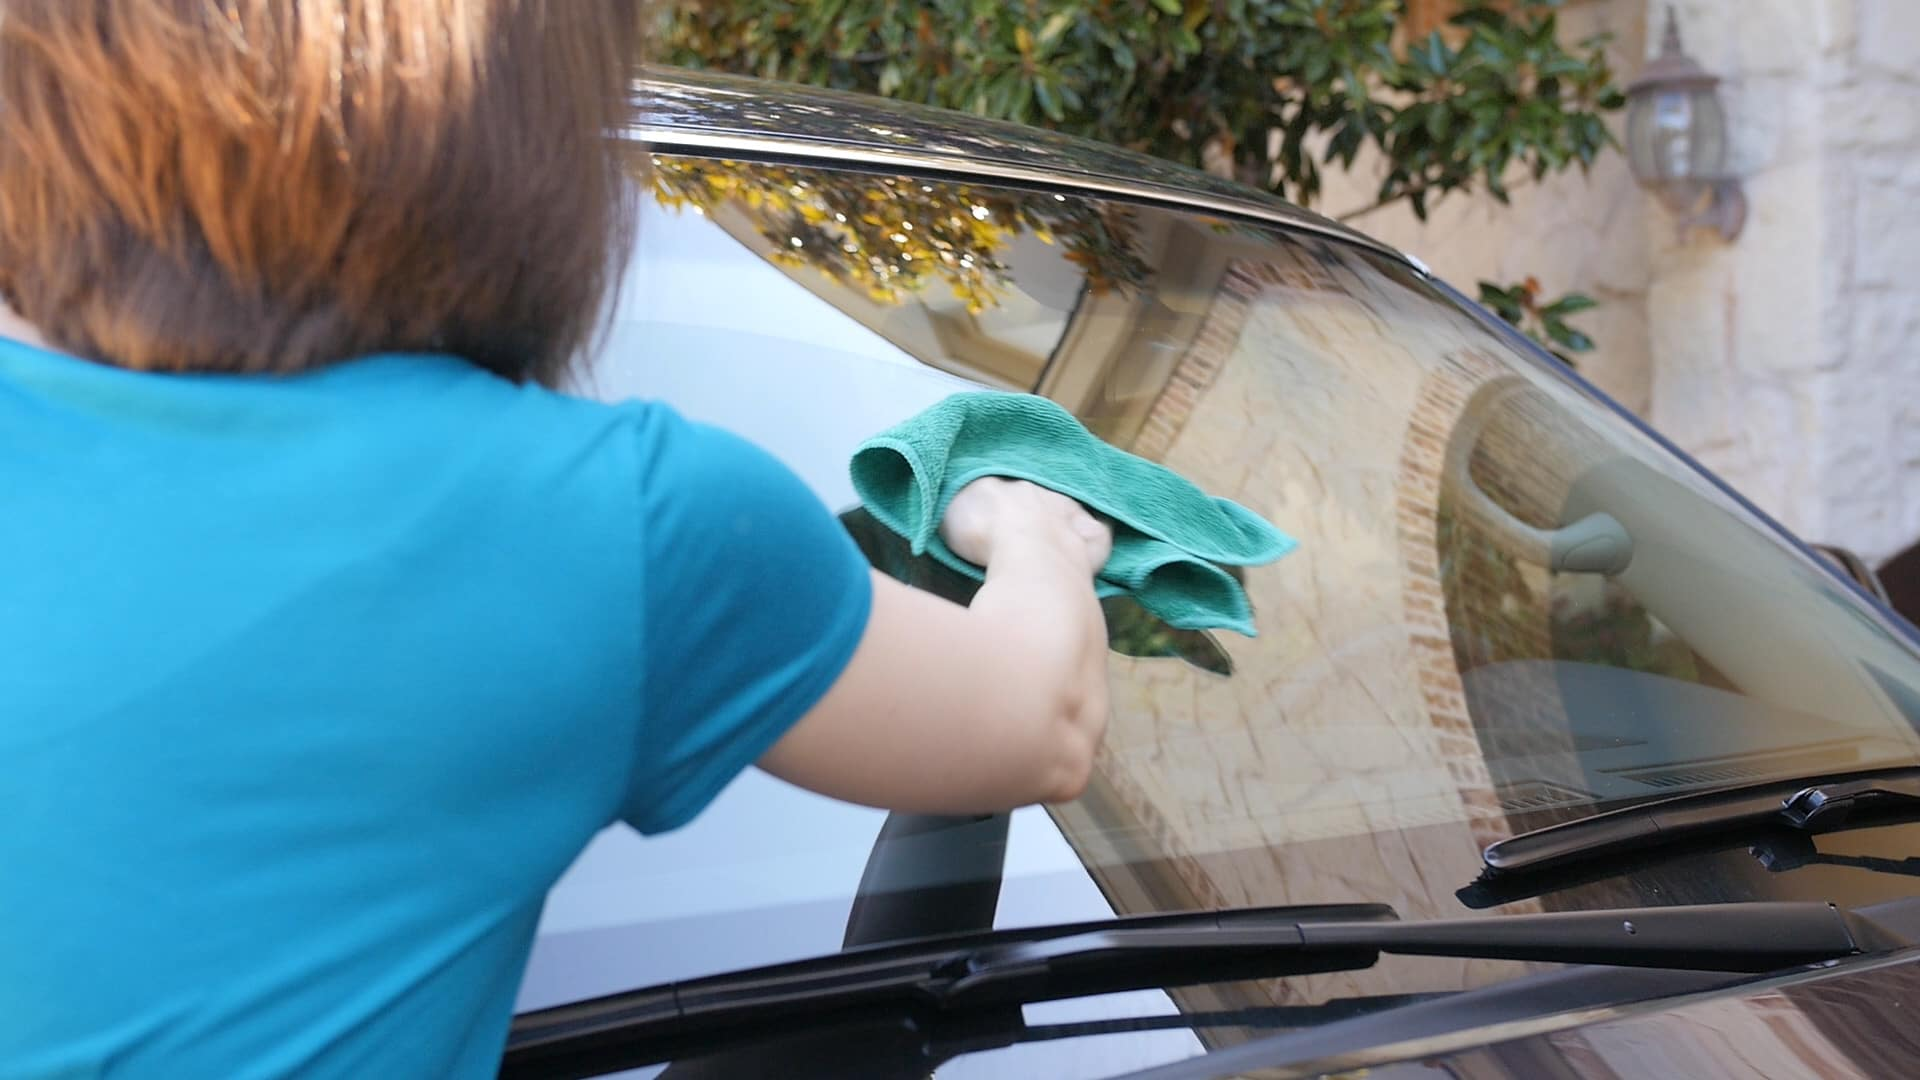 Maserati Fort Lauderdale Car Cleaning Guide